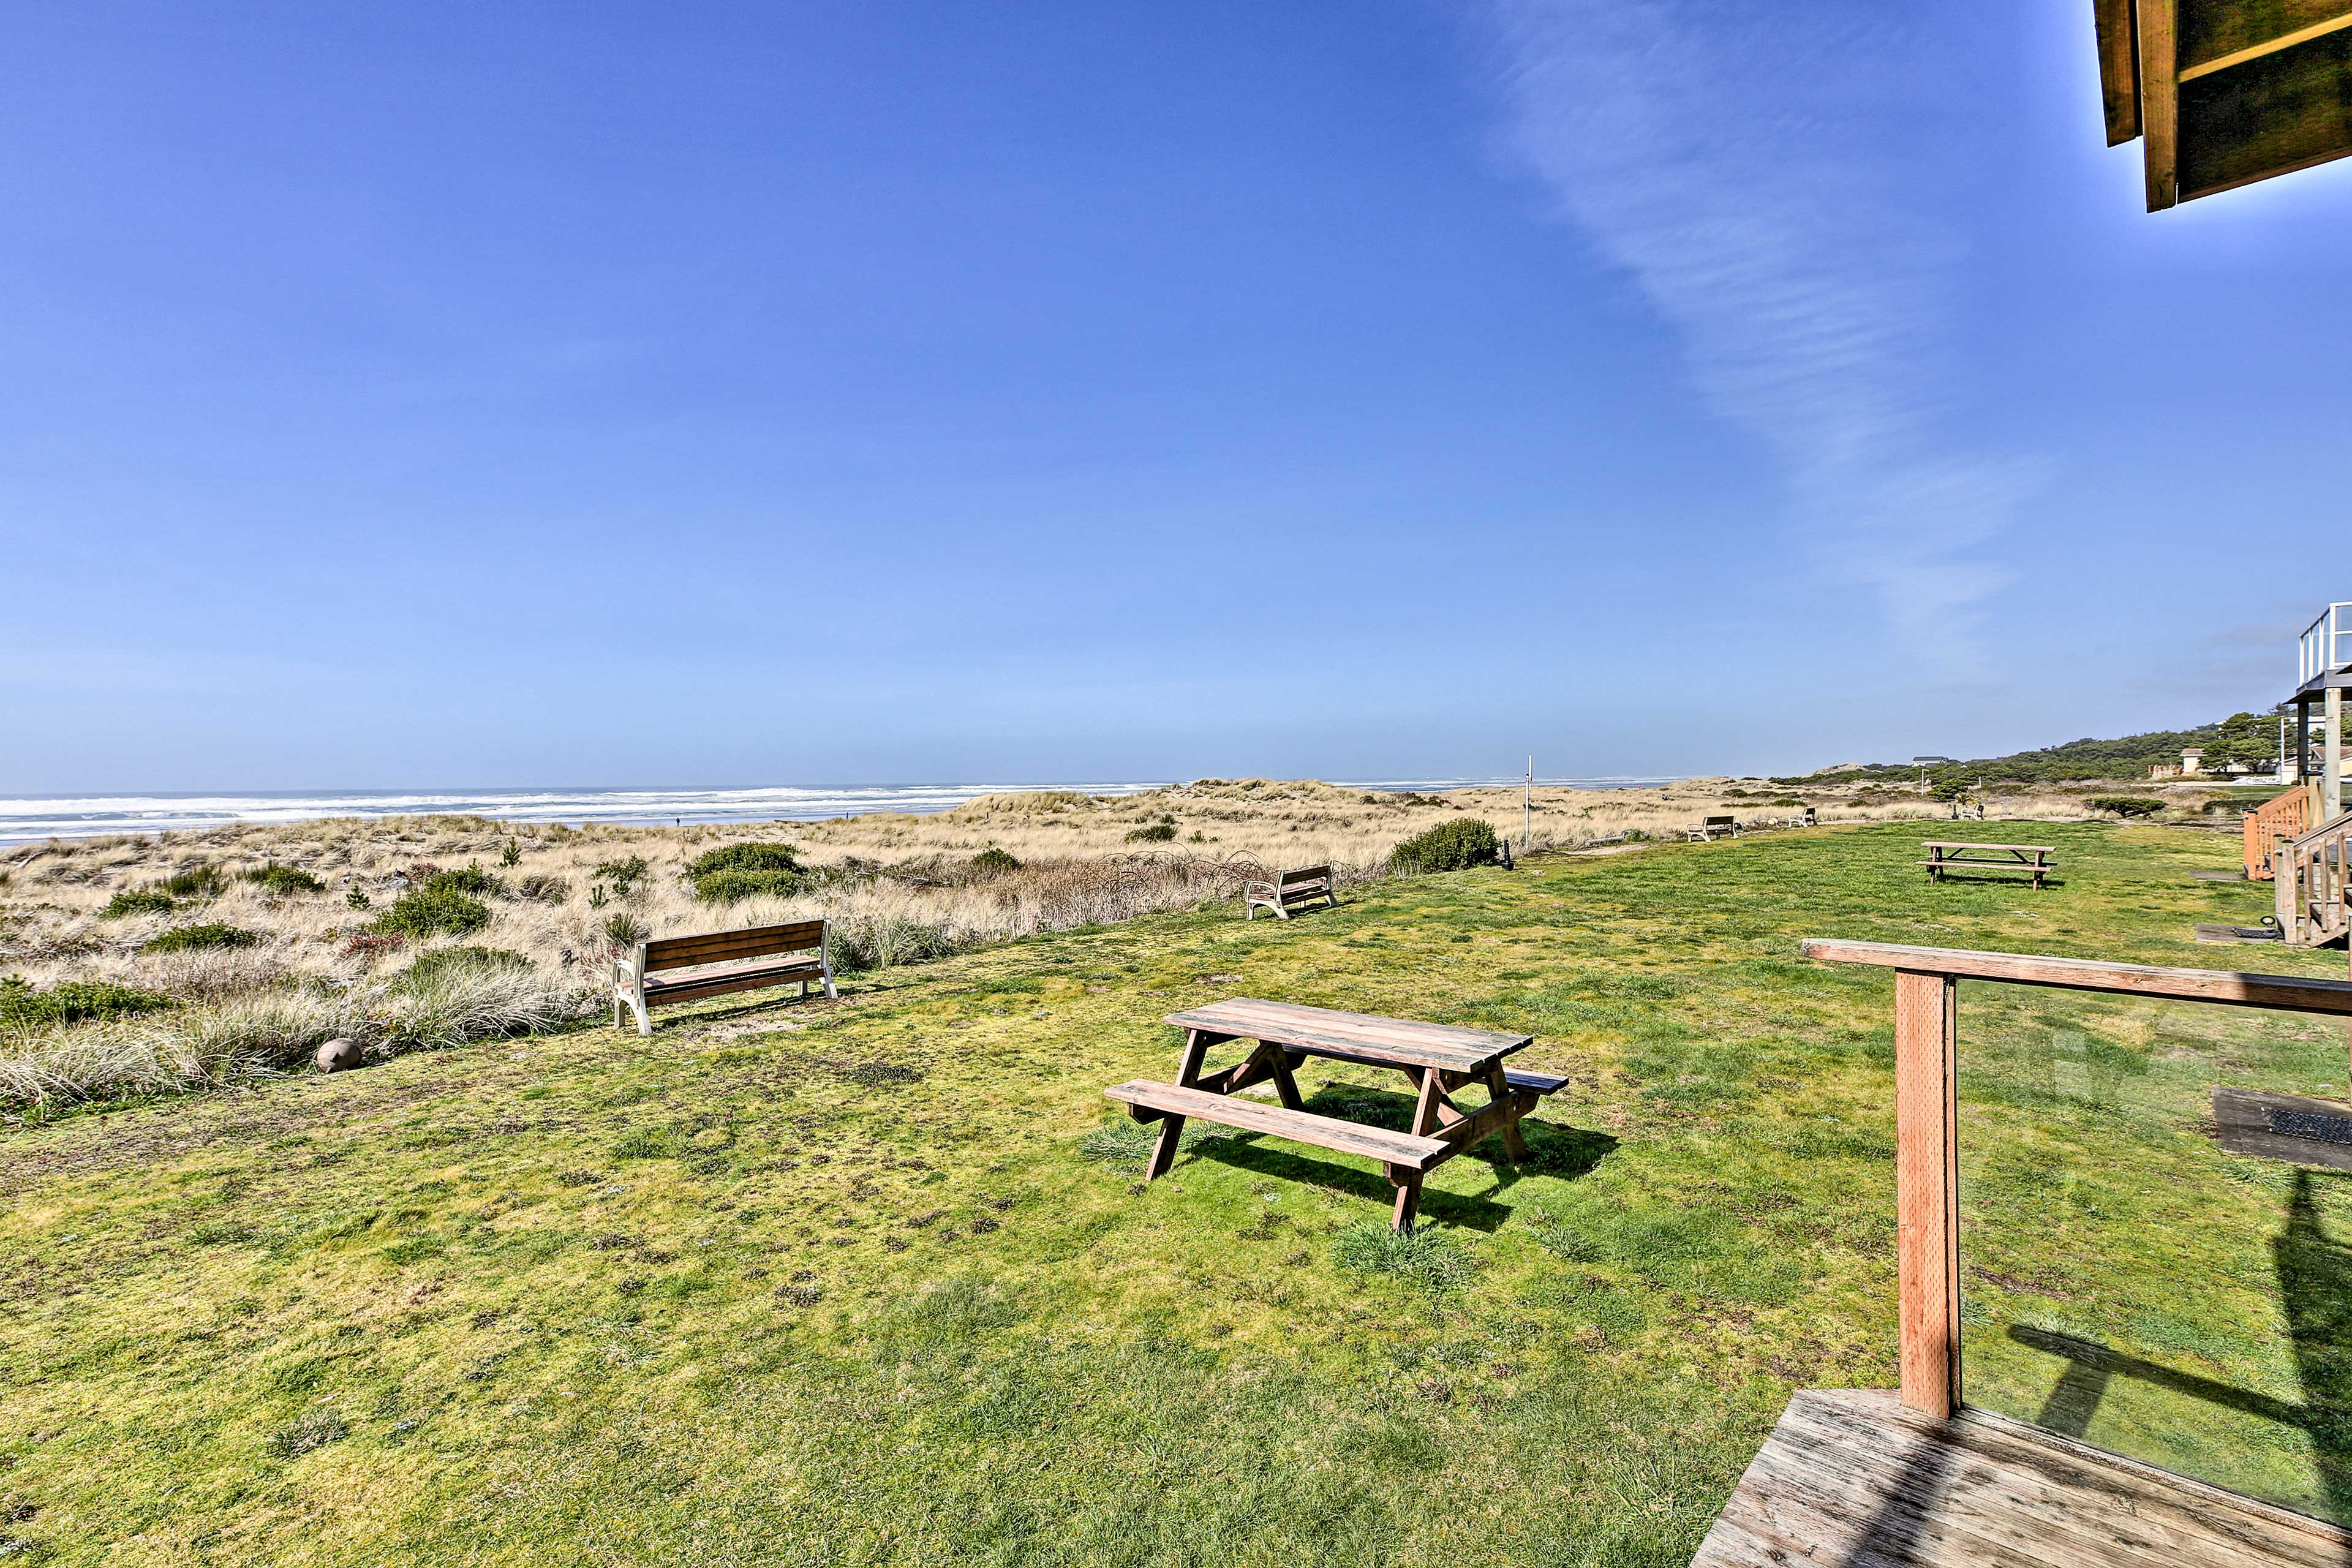 Bring lunch out to the picnic table while enjoying the sea view.